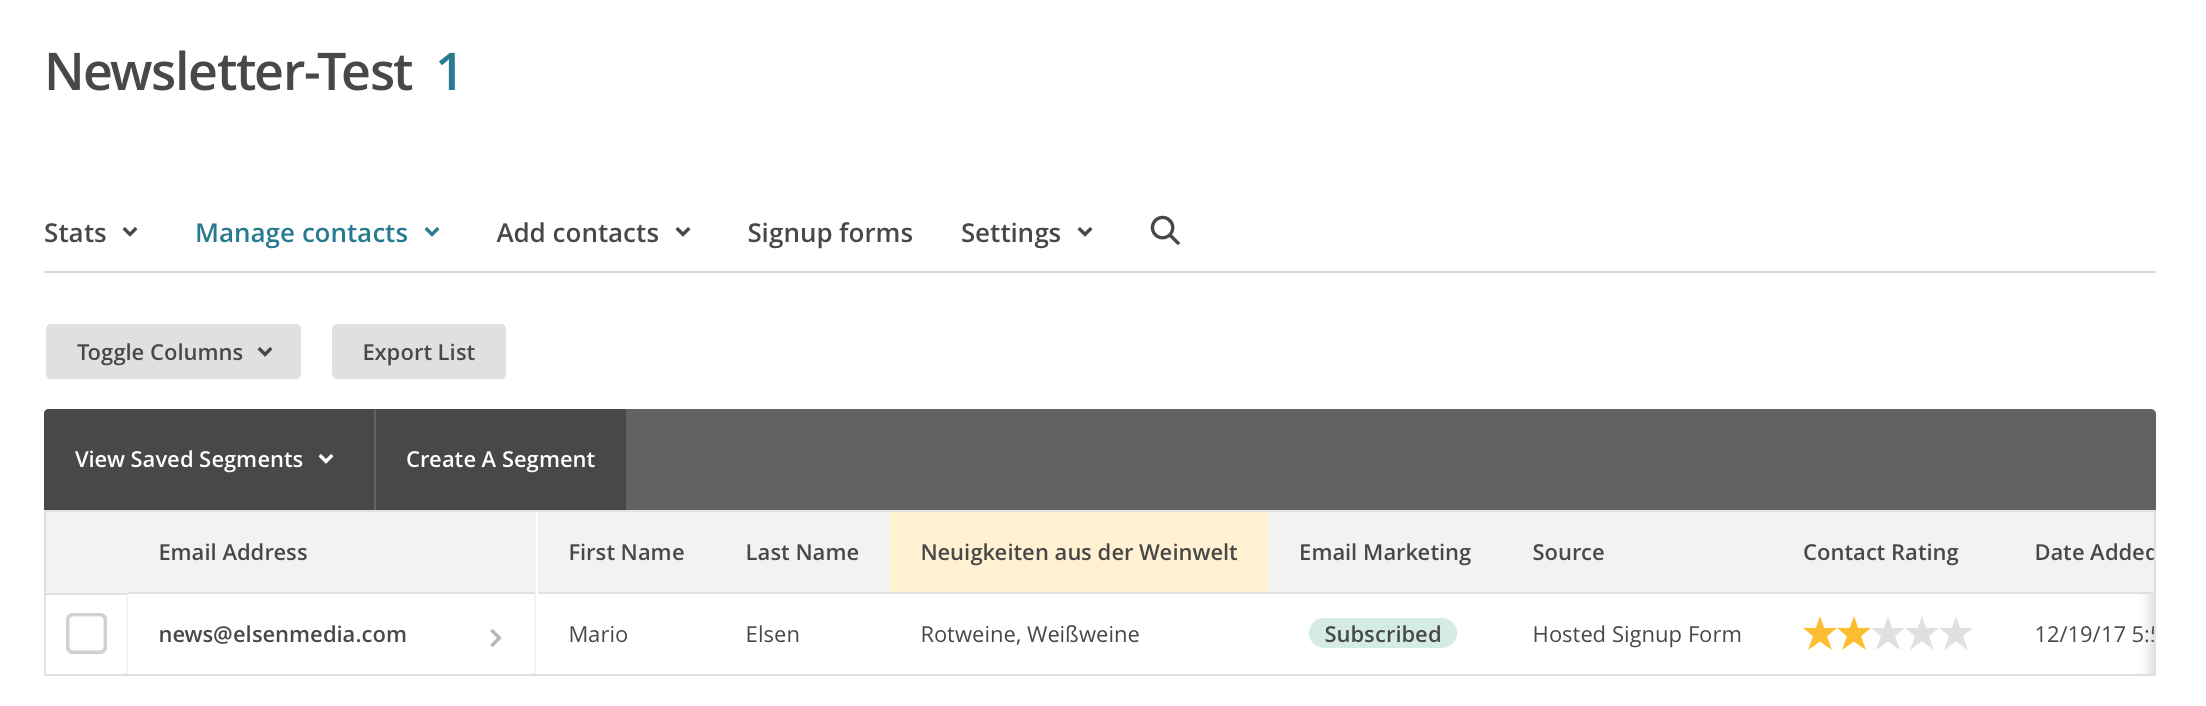 Gruppierte E-Mail Liste in Mailchimp